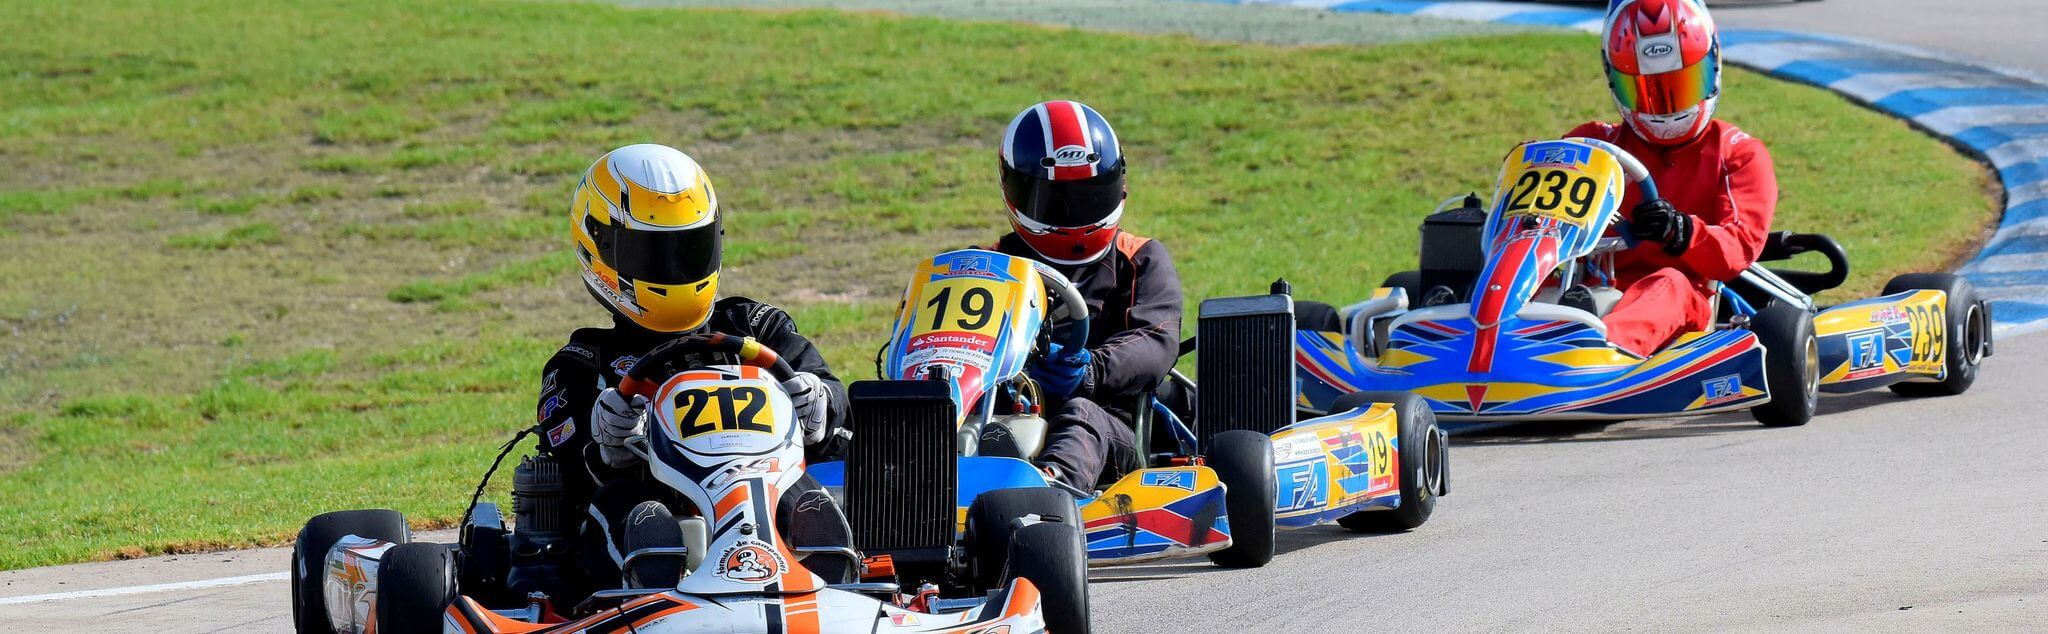 Karting en Valladolises